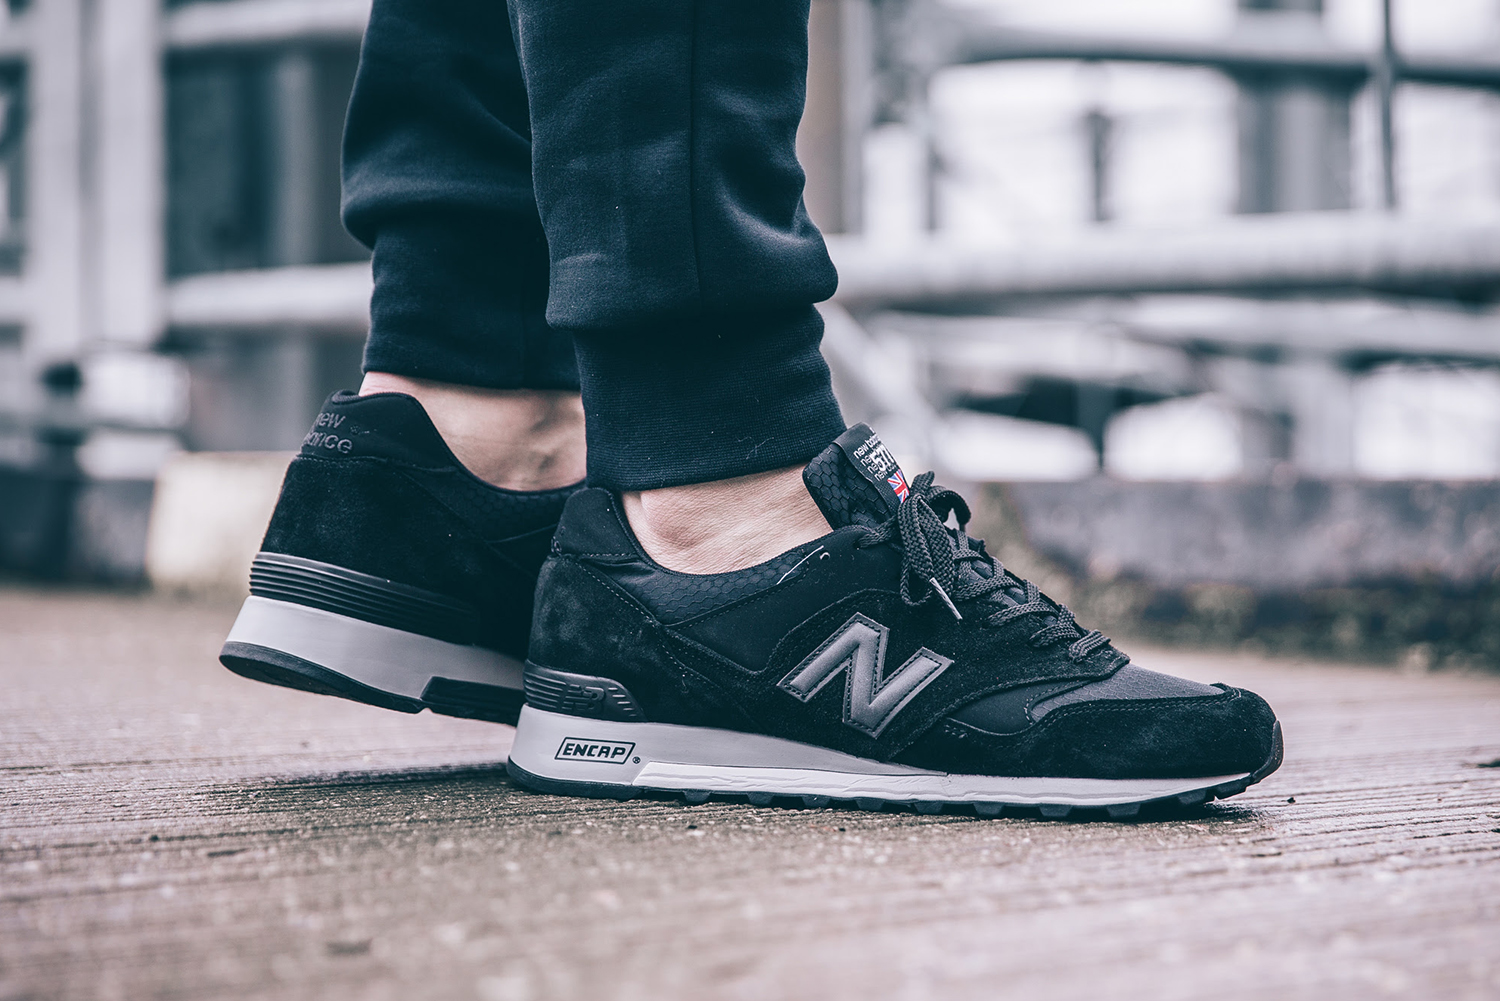 New Balance Blacks-Out the England-Made 577